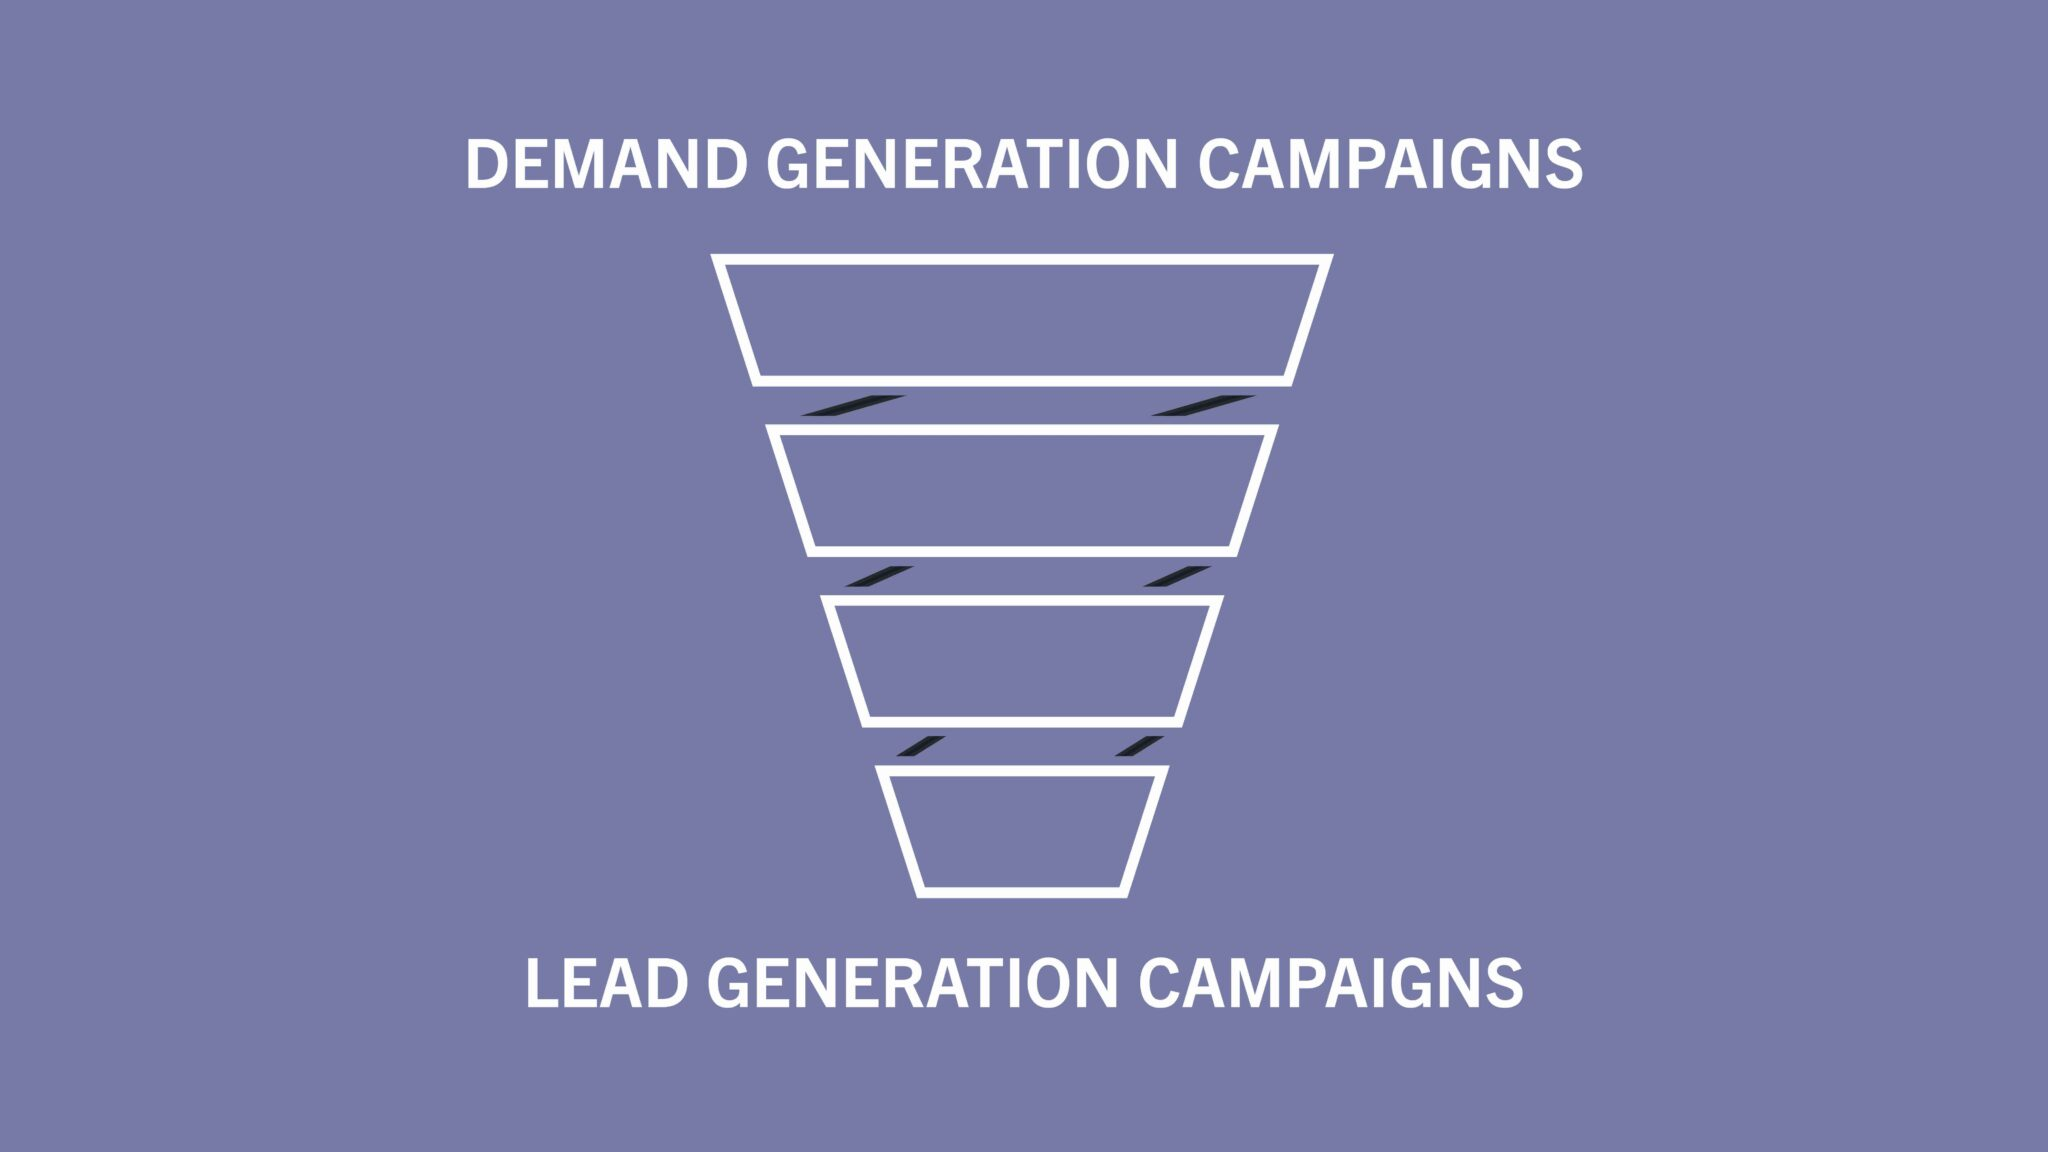 alignment between demand and lead generation strategies